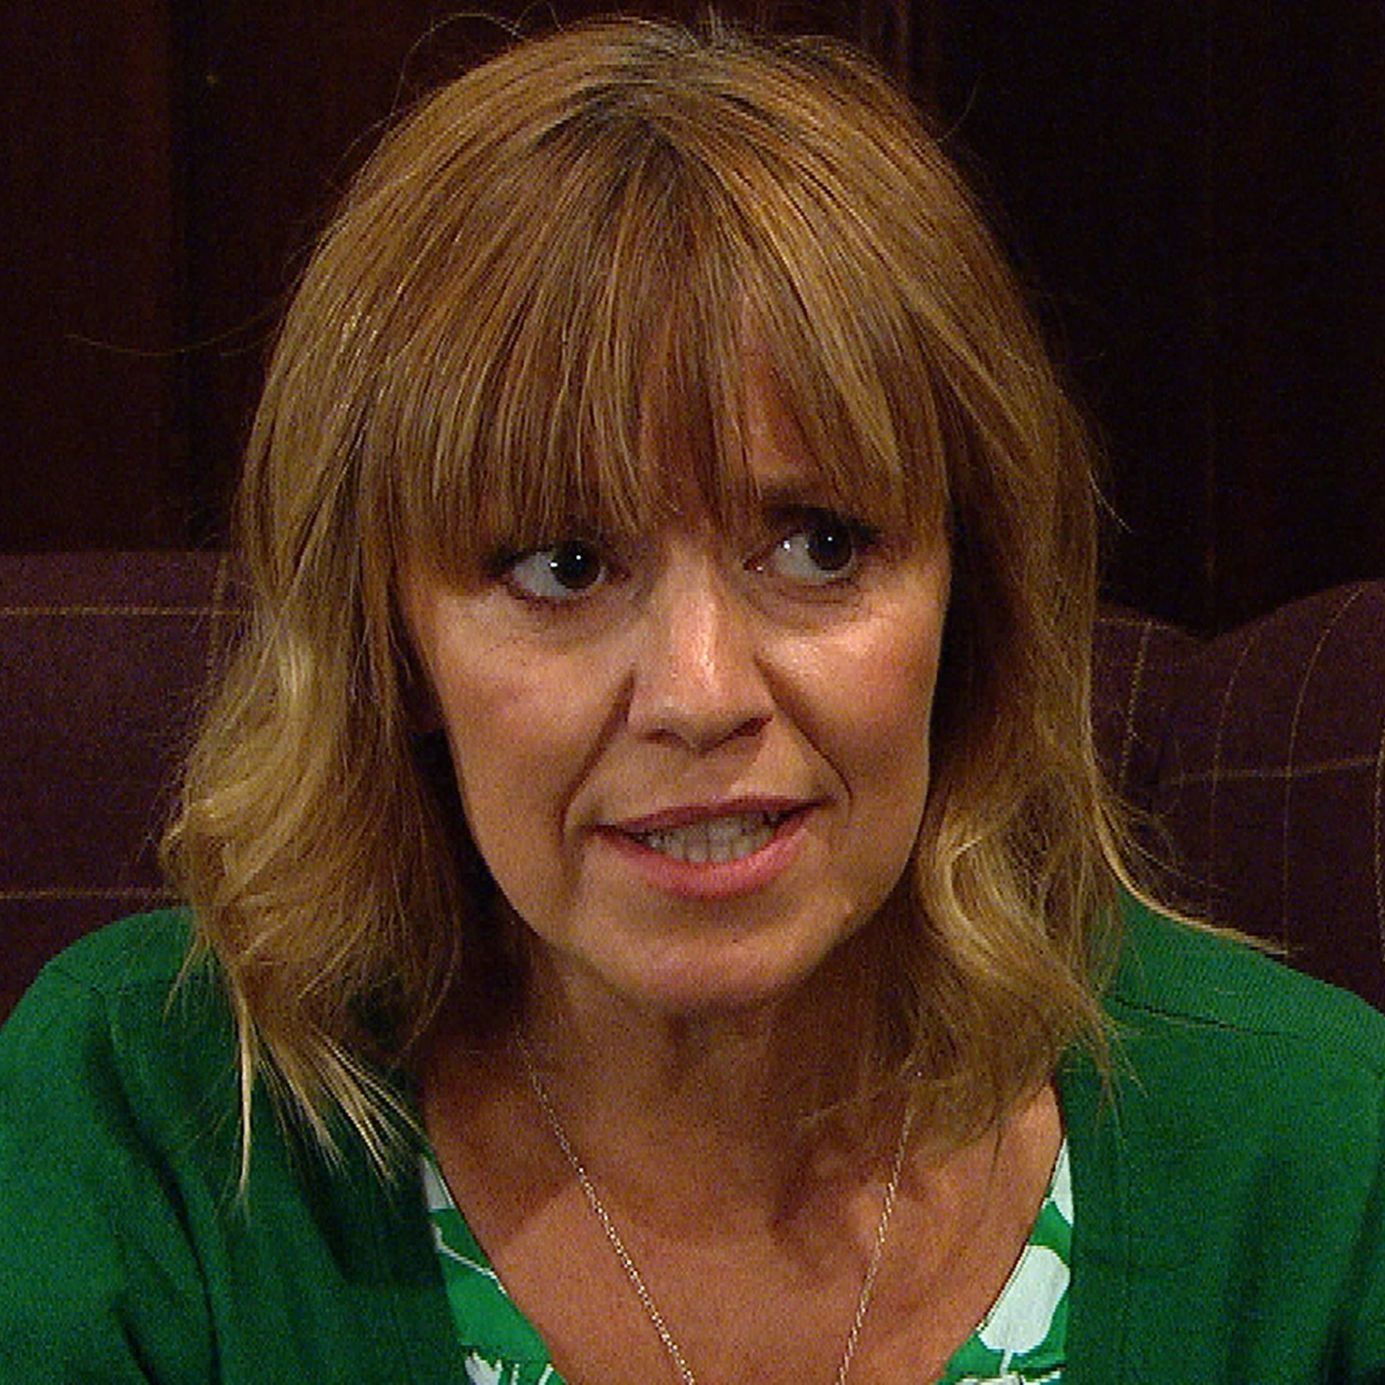 Emmerdale clash teased as Rhona hides her exit plan from Marlon